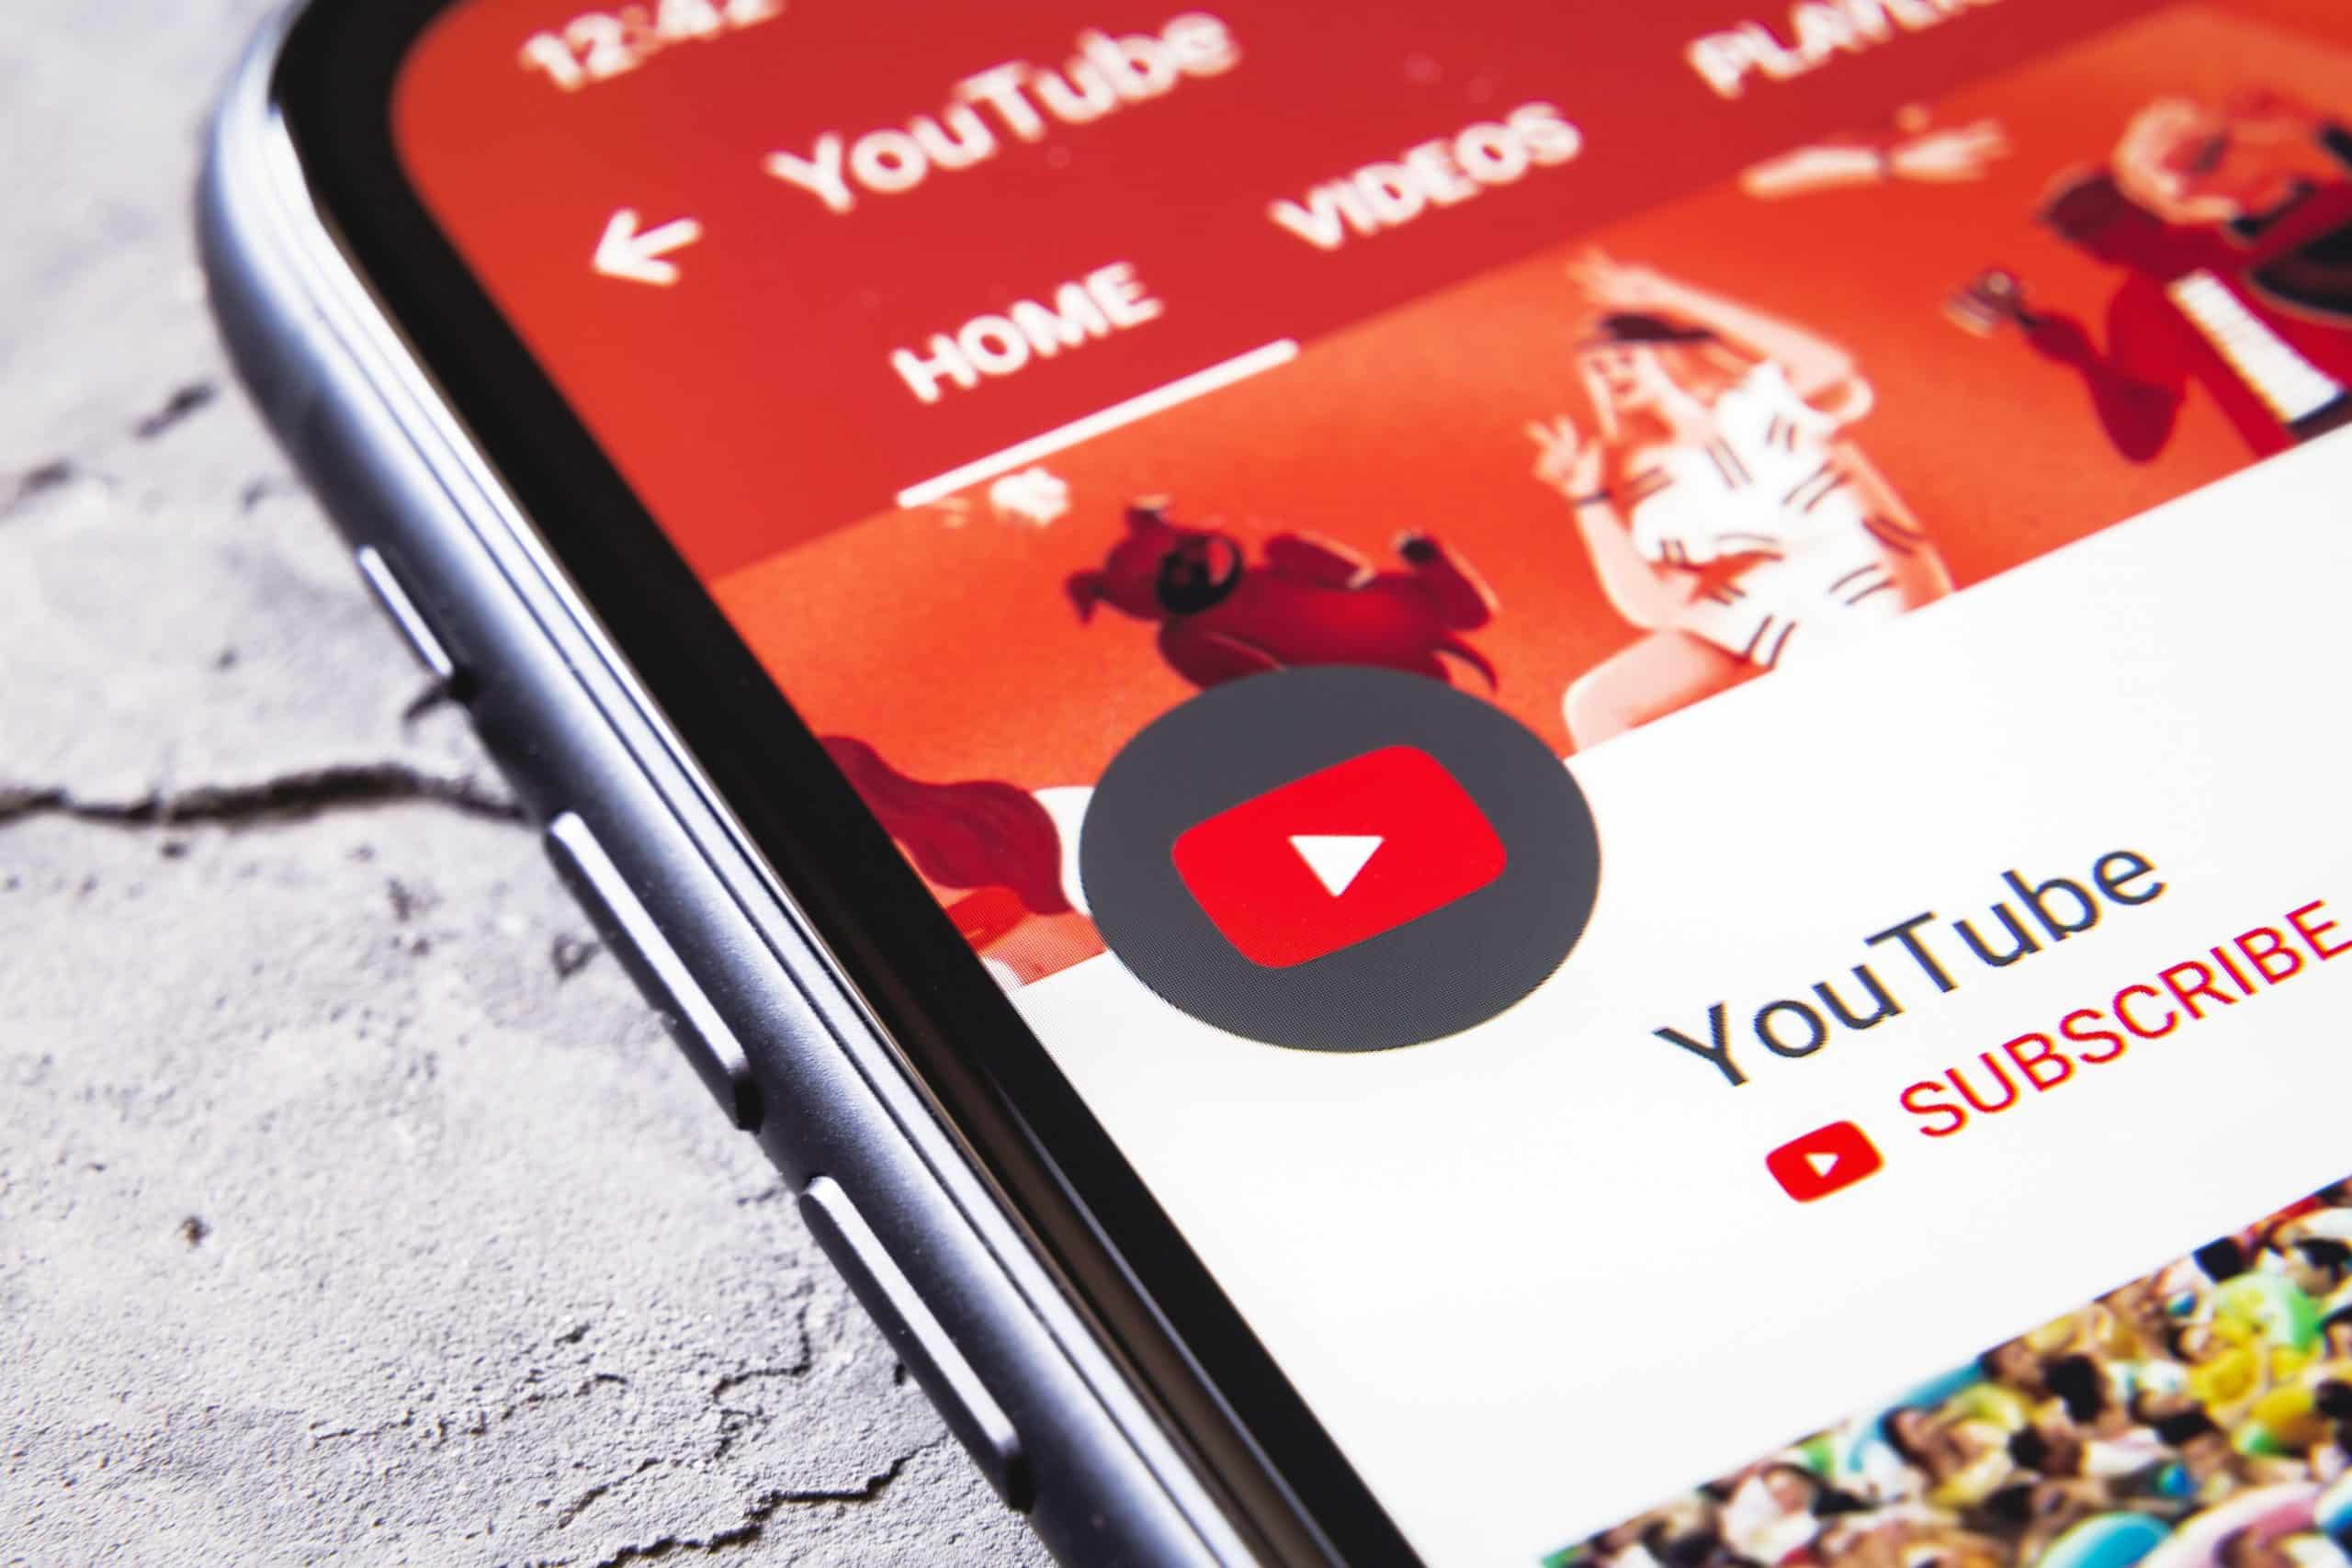 youtube app icon channel on iphone xr 1146031907 7cbfc9569c88432fa47d290ae73ec3dc scaled